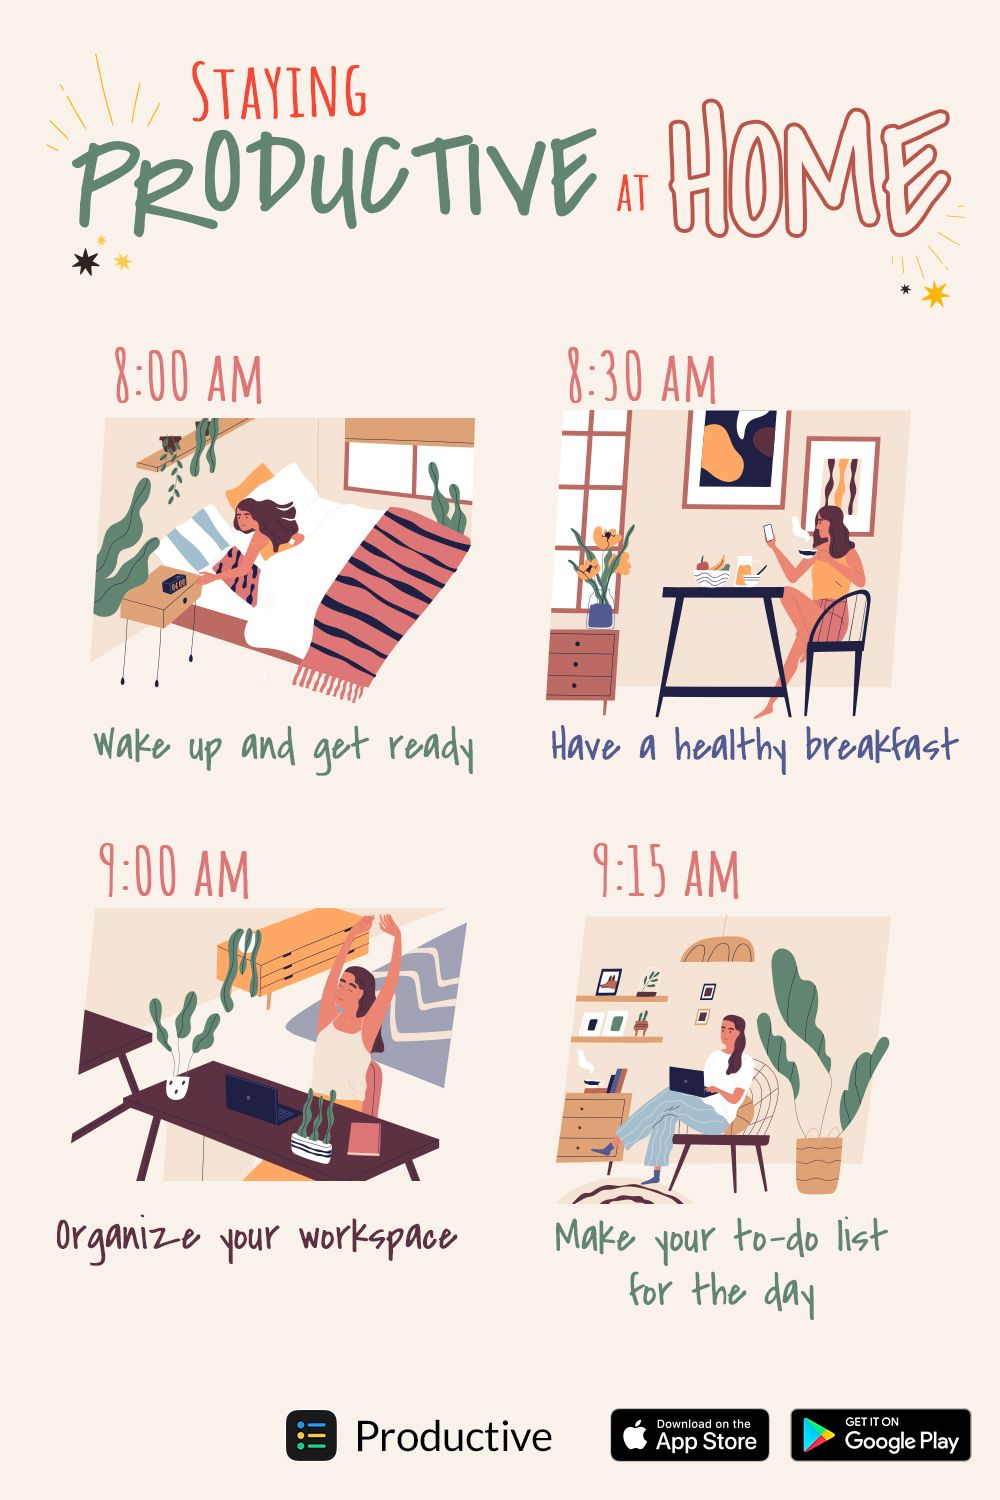 How to stay productive at home?